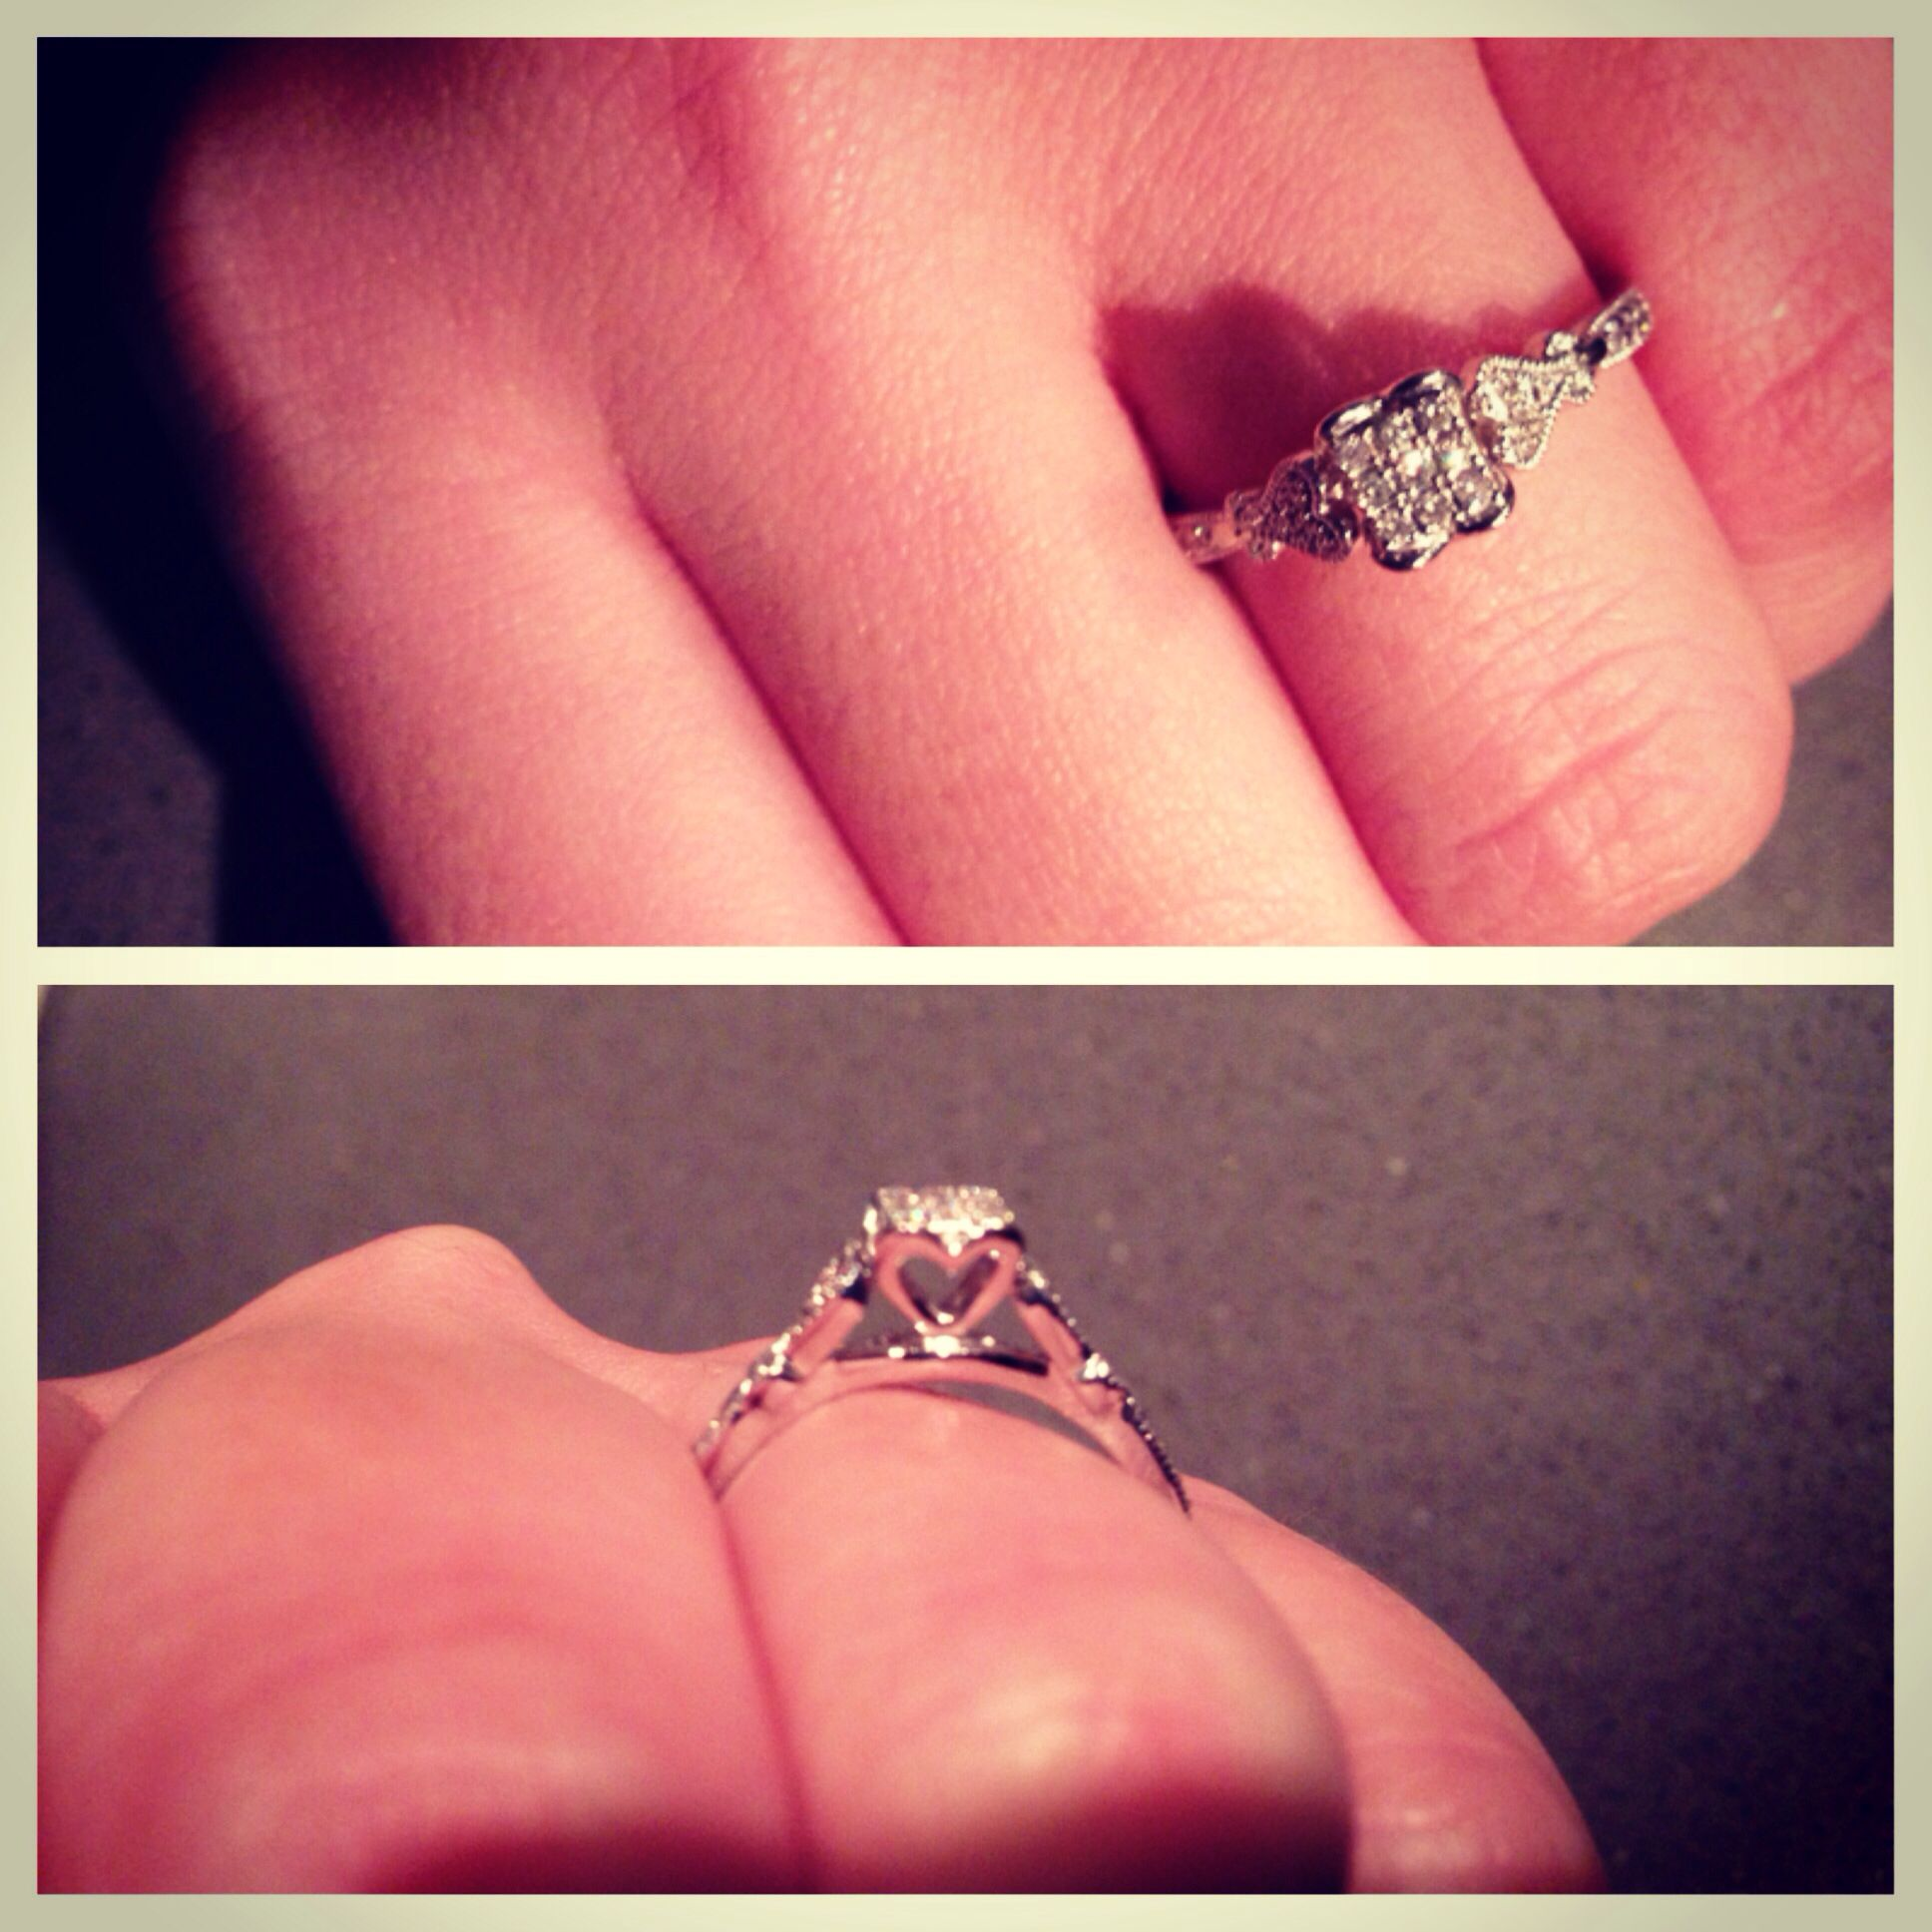 This is very similar to the ring I want, but the one I want is more ...